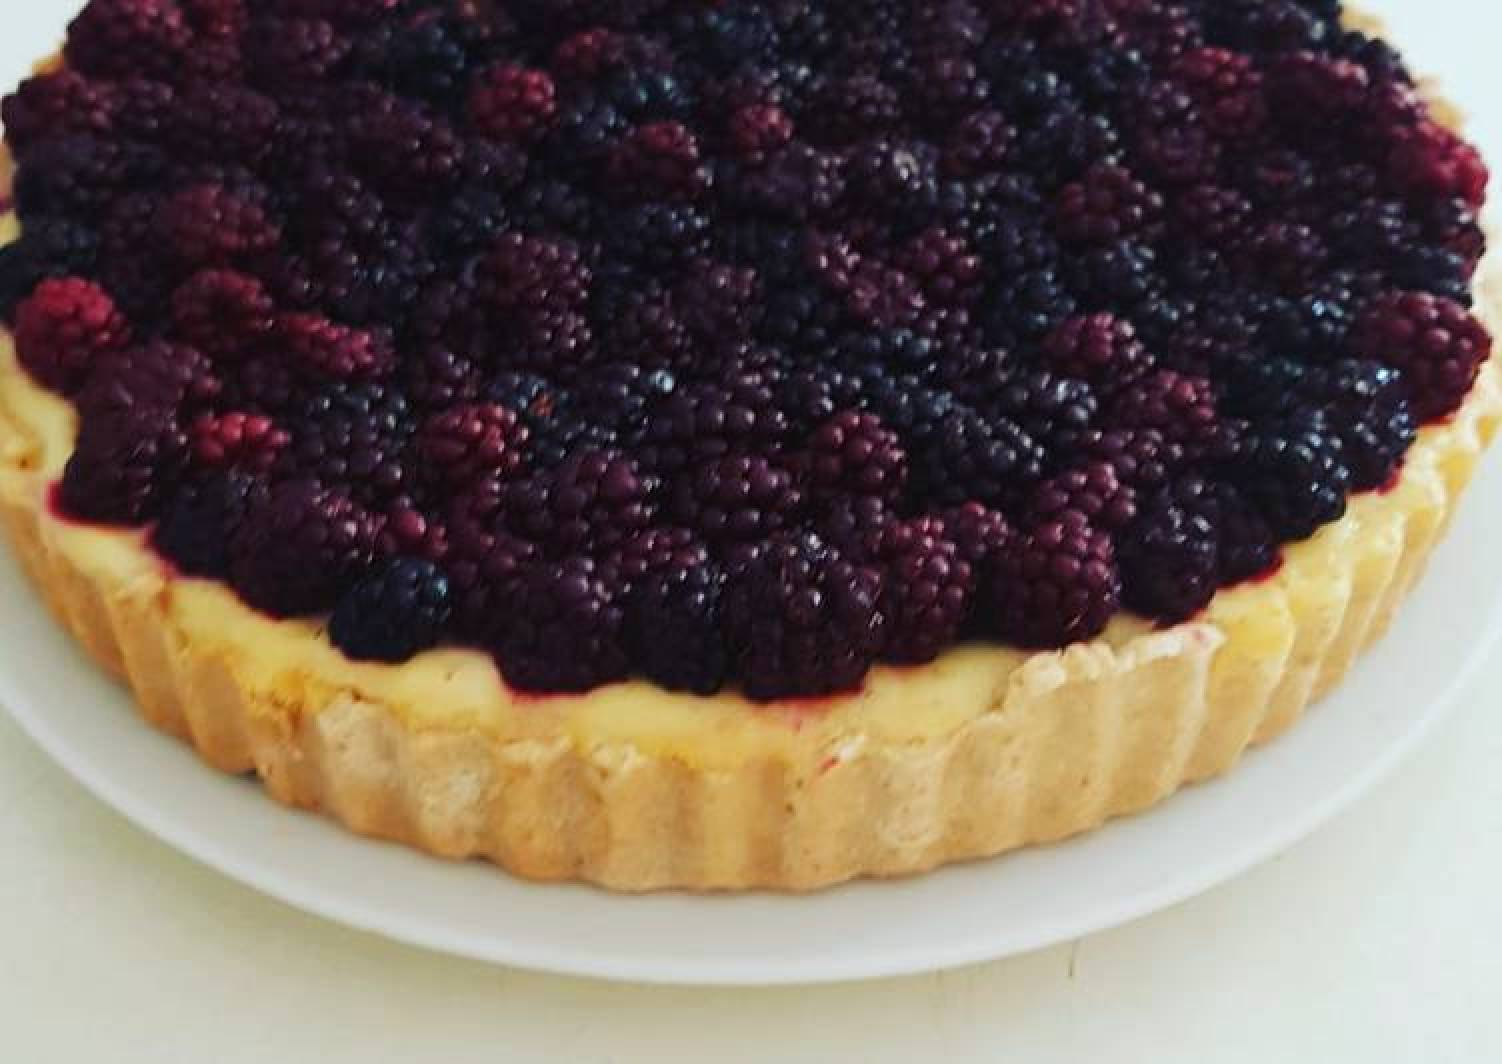 Baked cheesecake tart with blackberries